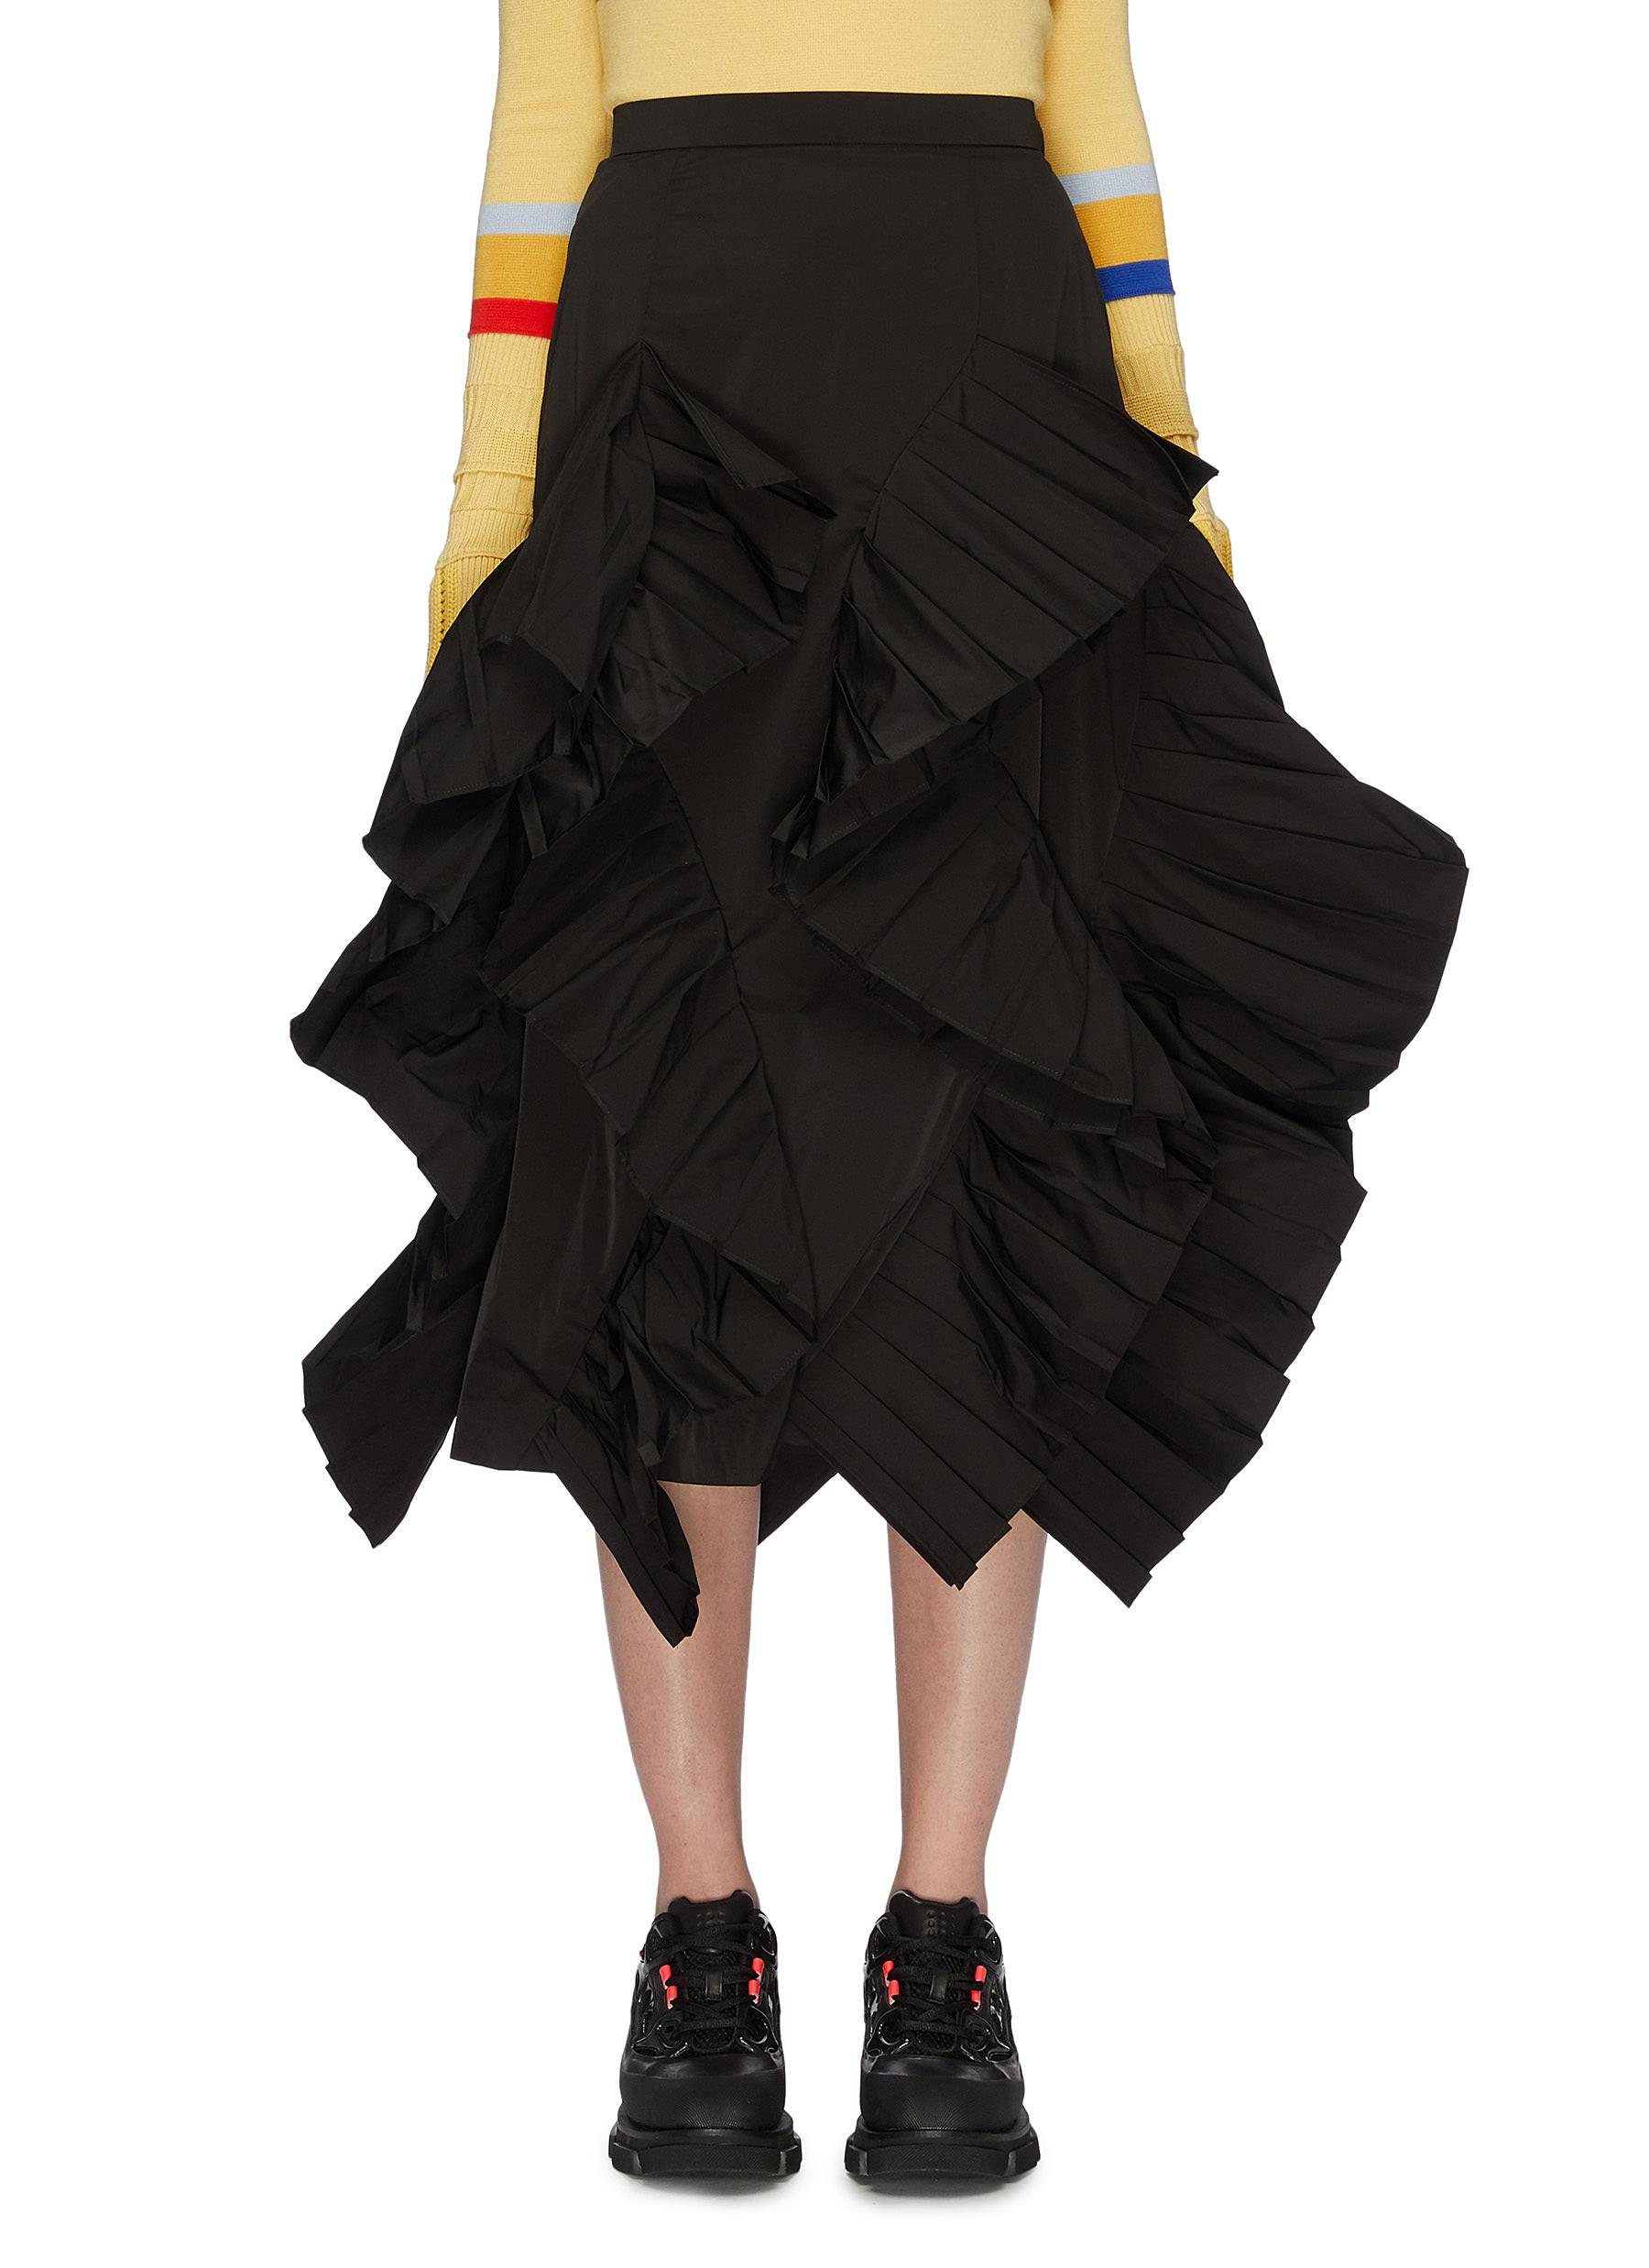 Frill pleated layered twill skirt by Enföld